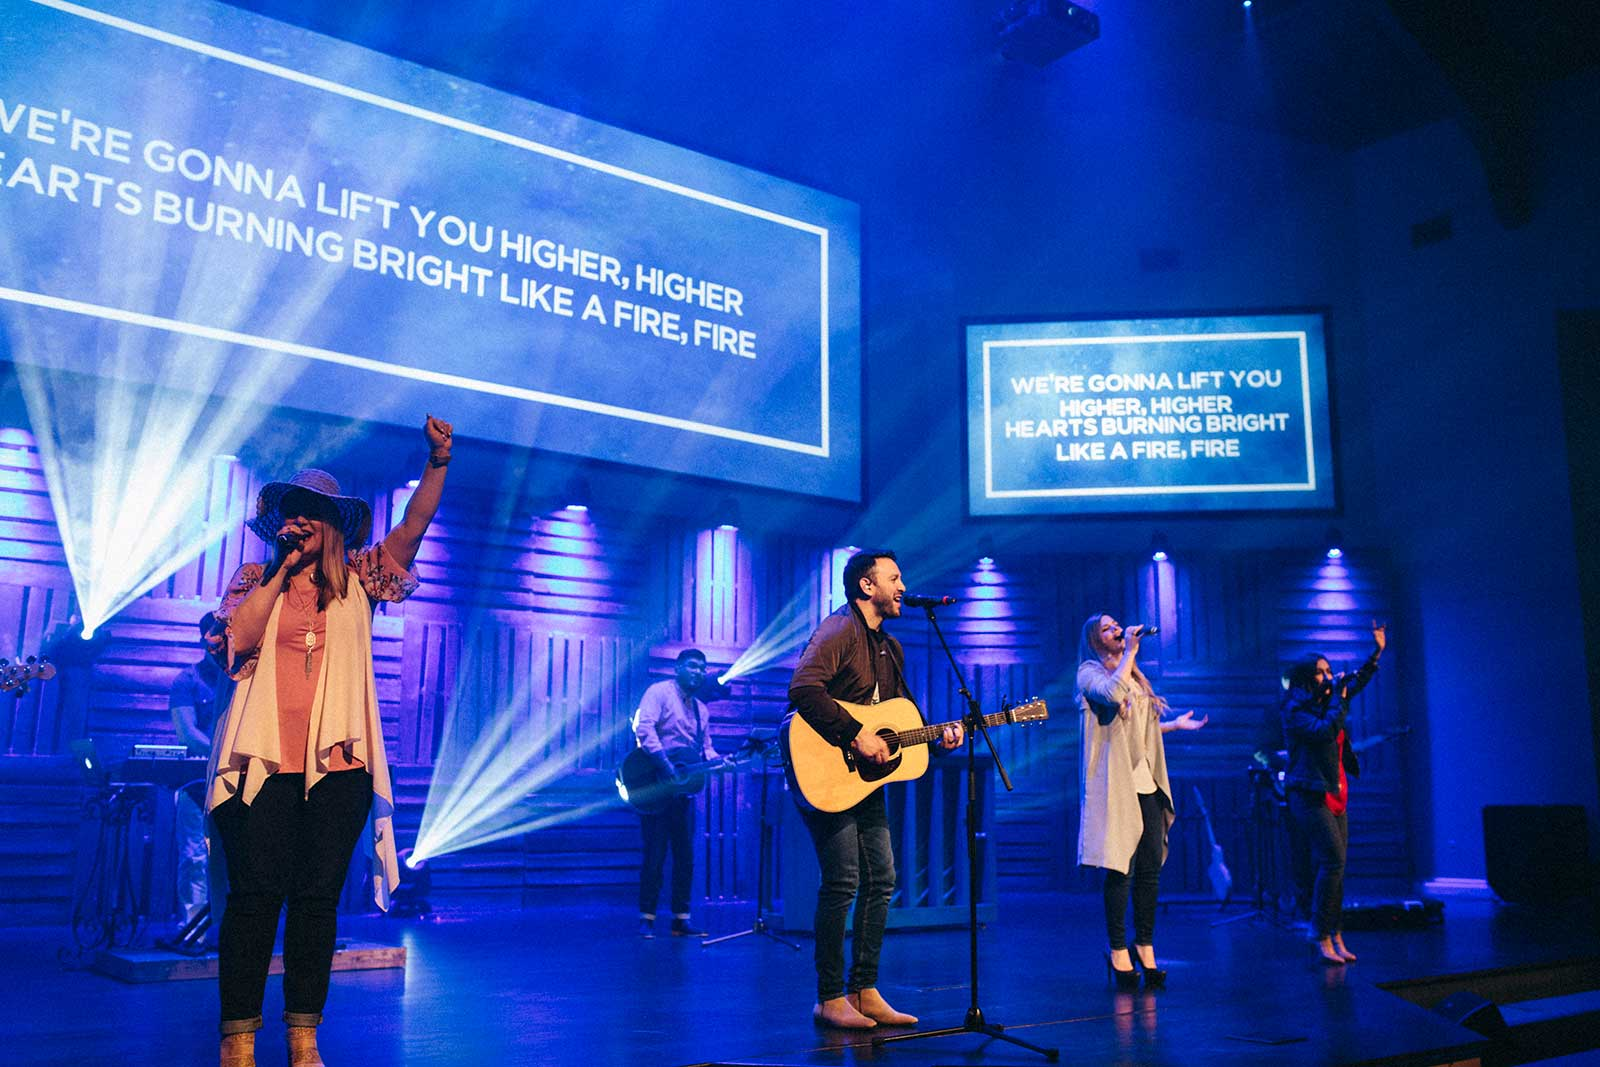 Ministries at Celebration Church in The Woodlands, TX